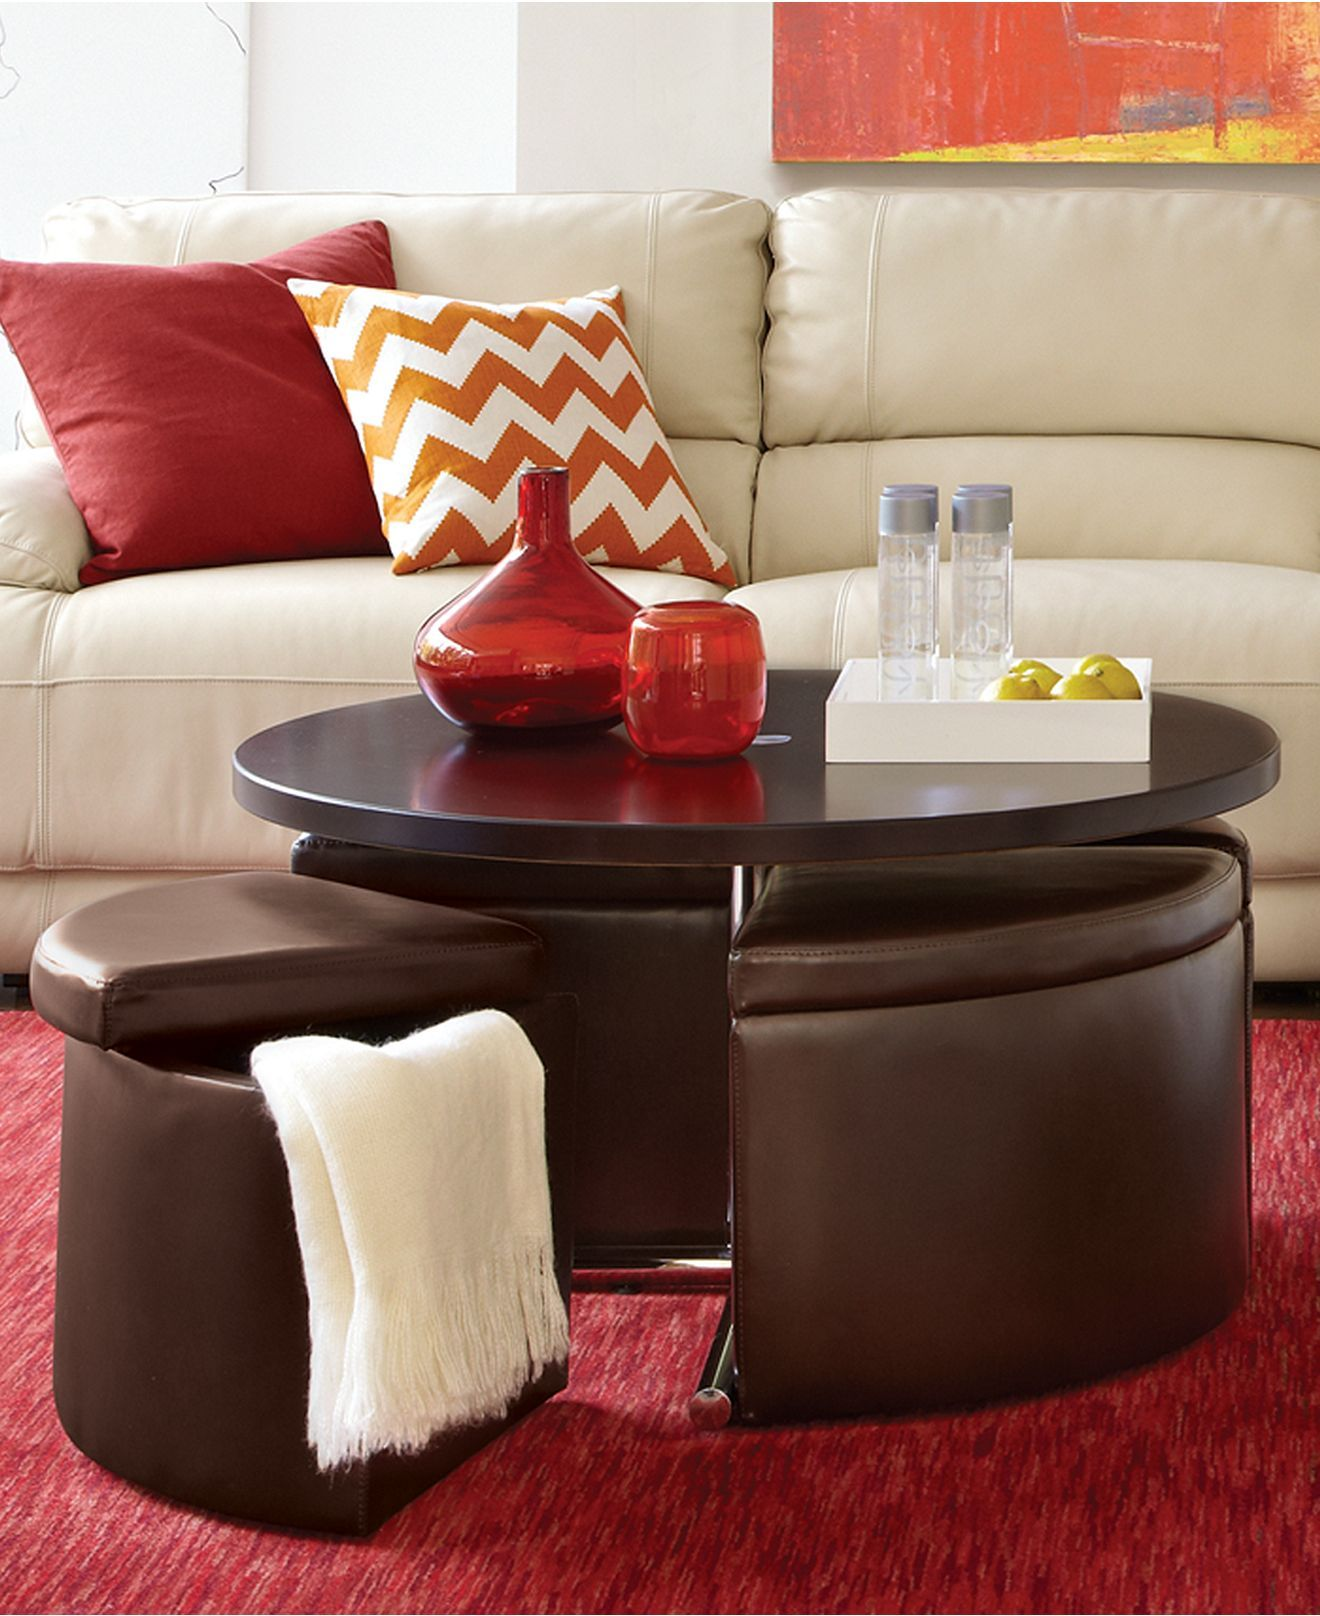 Neptune Coffee Table With Storage Ottomans Living Room Furniture Furniture Macys Coffee Table With Storage Coffee Table With Seating Coffee Table